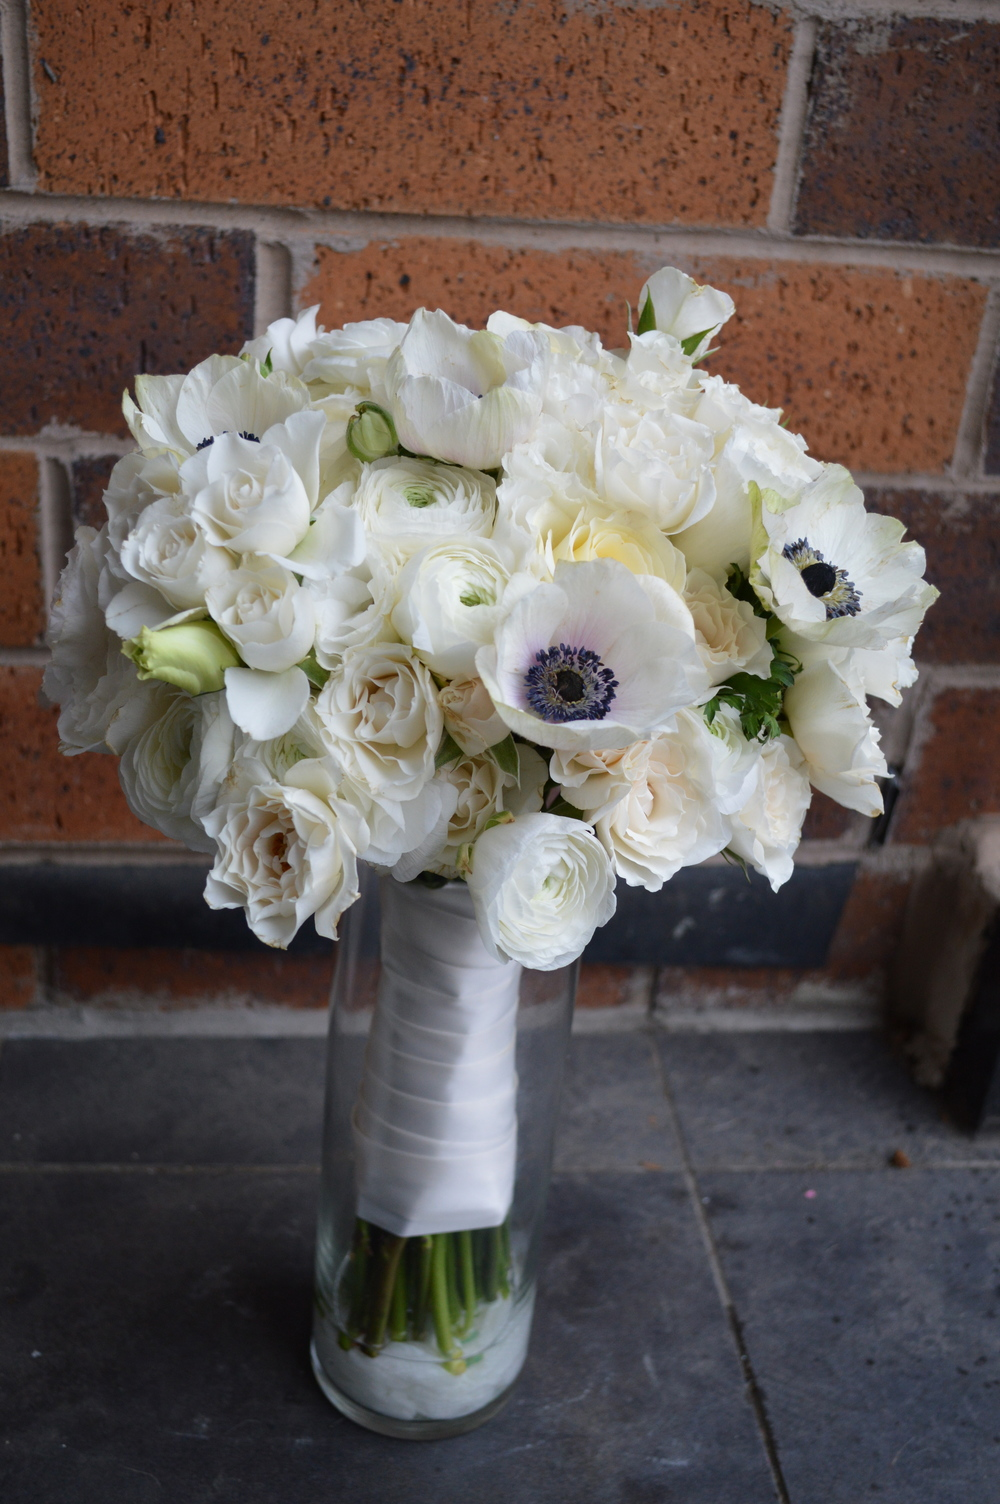 White Ranunculus, French Anemones, white Spray Roses and white Lisianthus wrapped in an Antique White ribbon and accenting pearl pins.